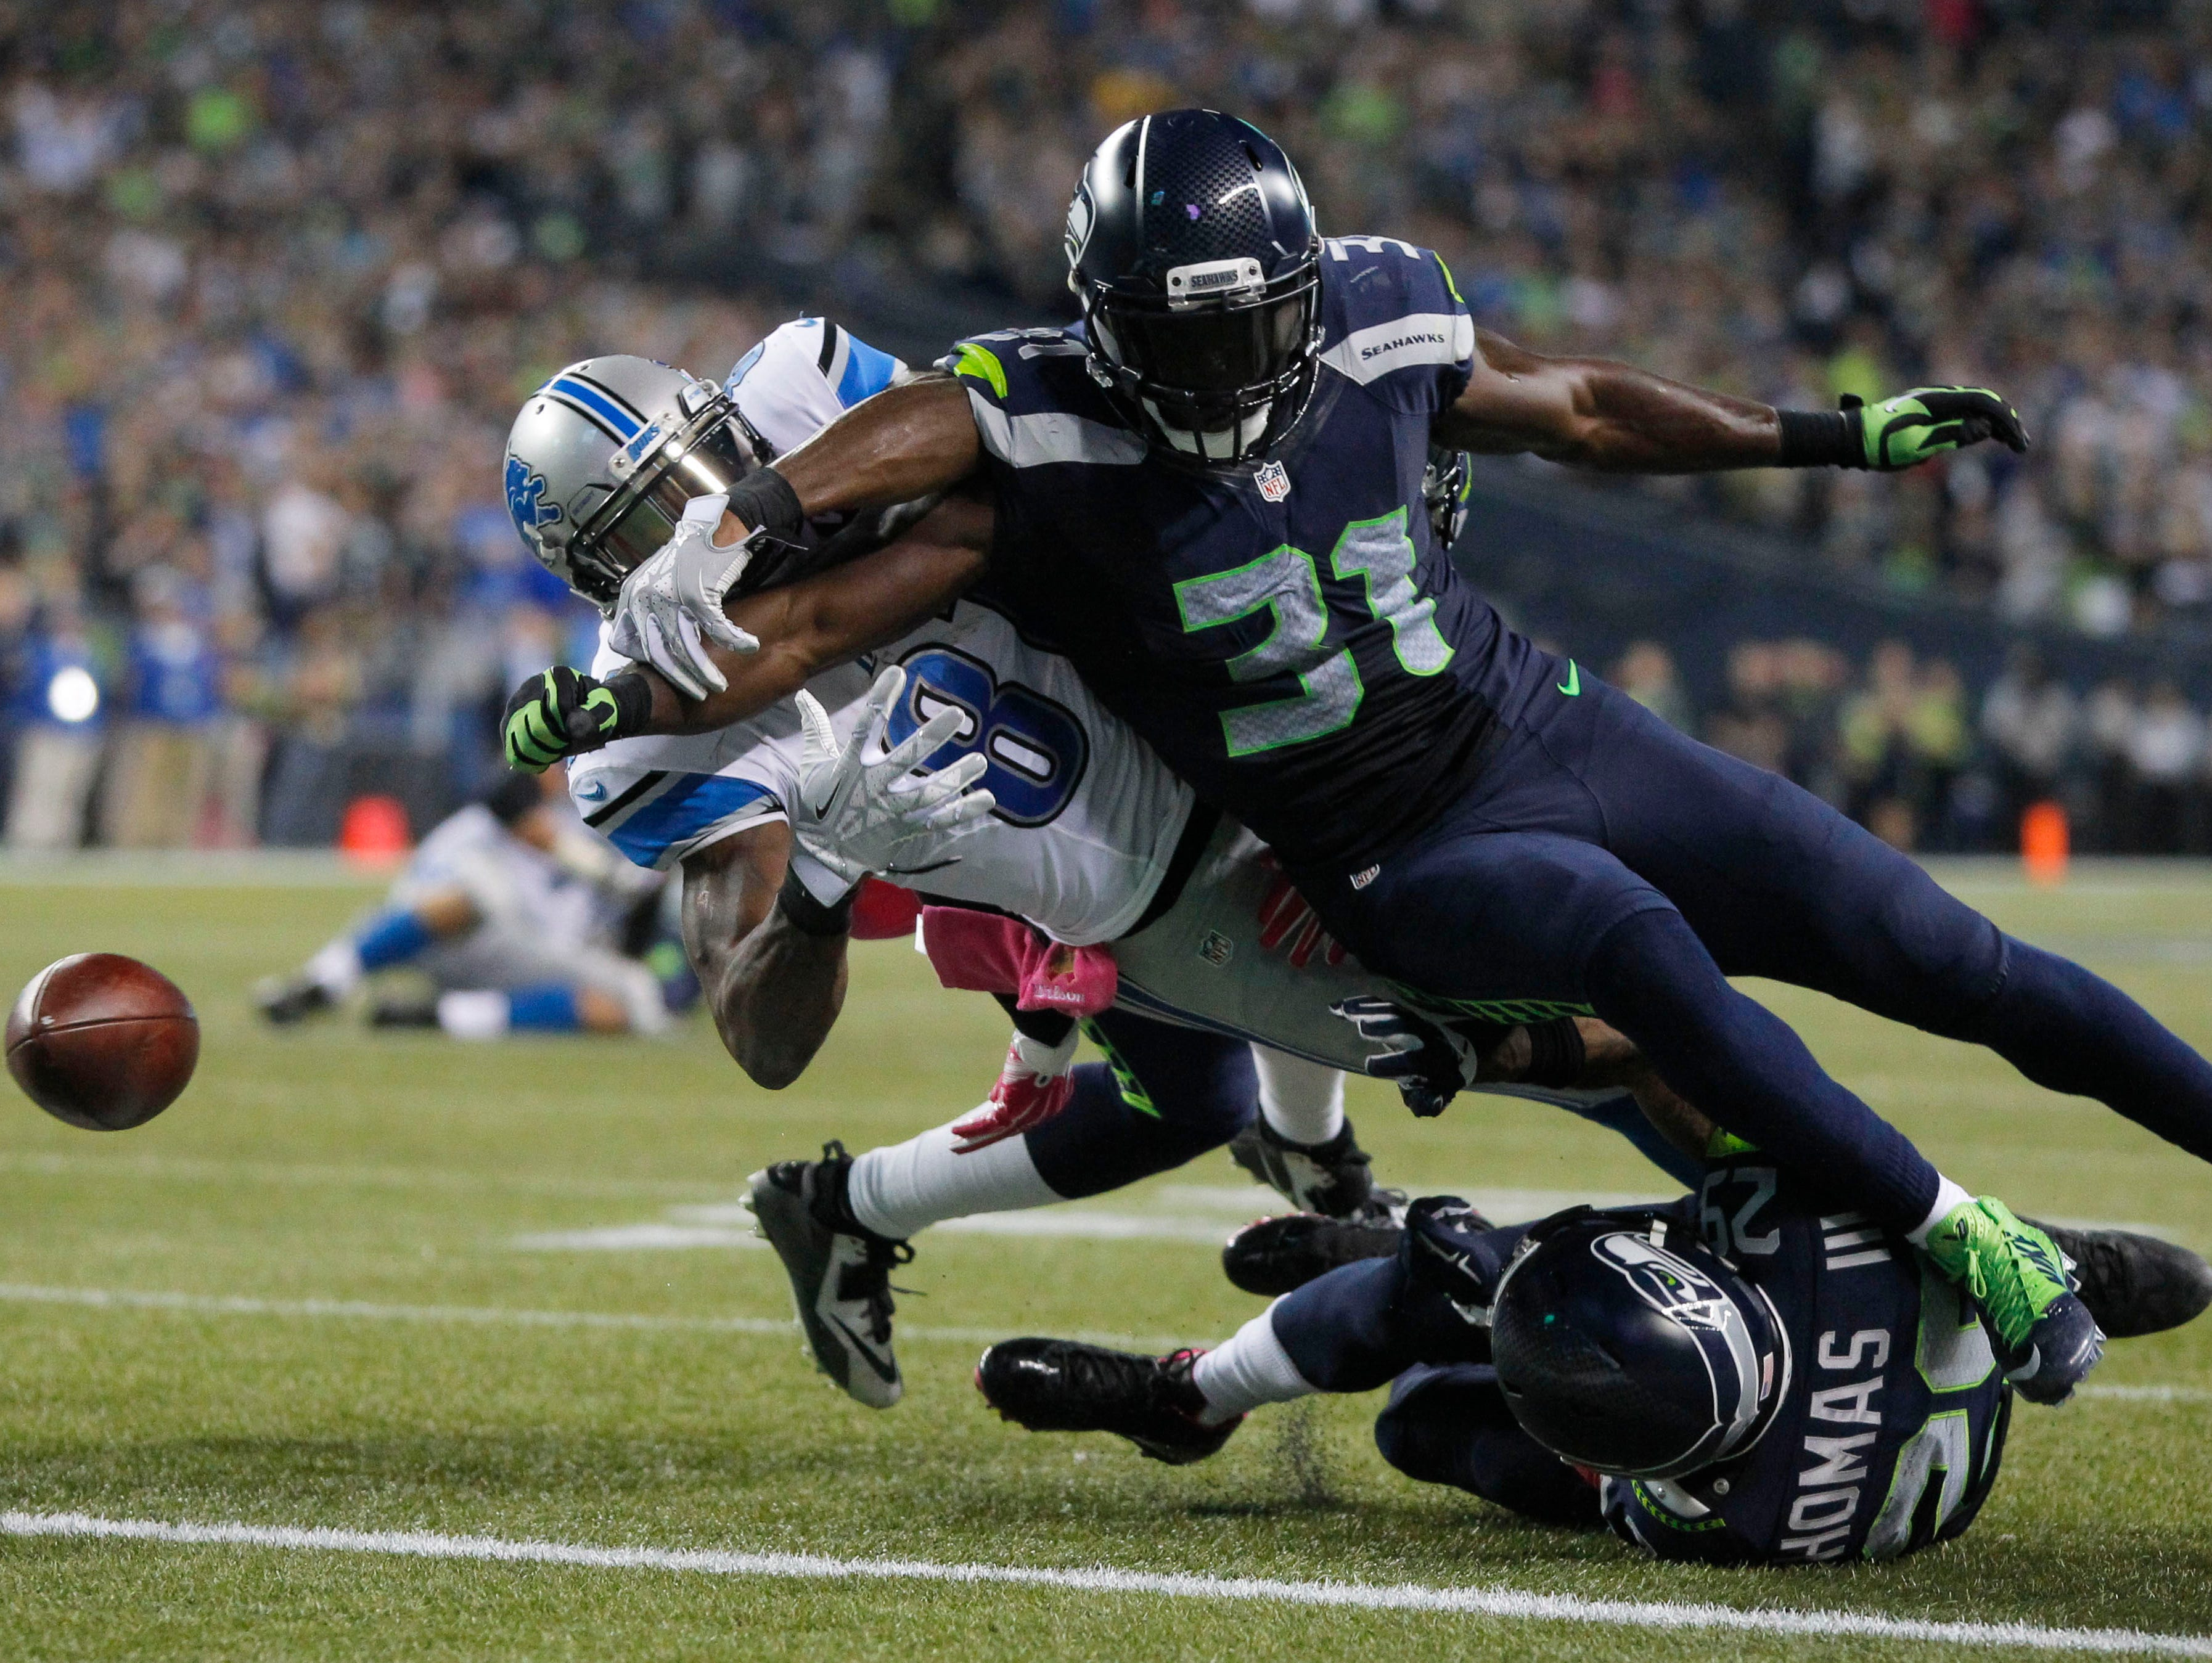 Seattle Seahawks strong safety Kam Chancellor (31) forces a fumble by Detroit Lions wide receiver Calvin Johnson (81) during the fourth quarter at CenturyLink Field.